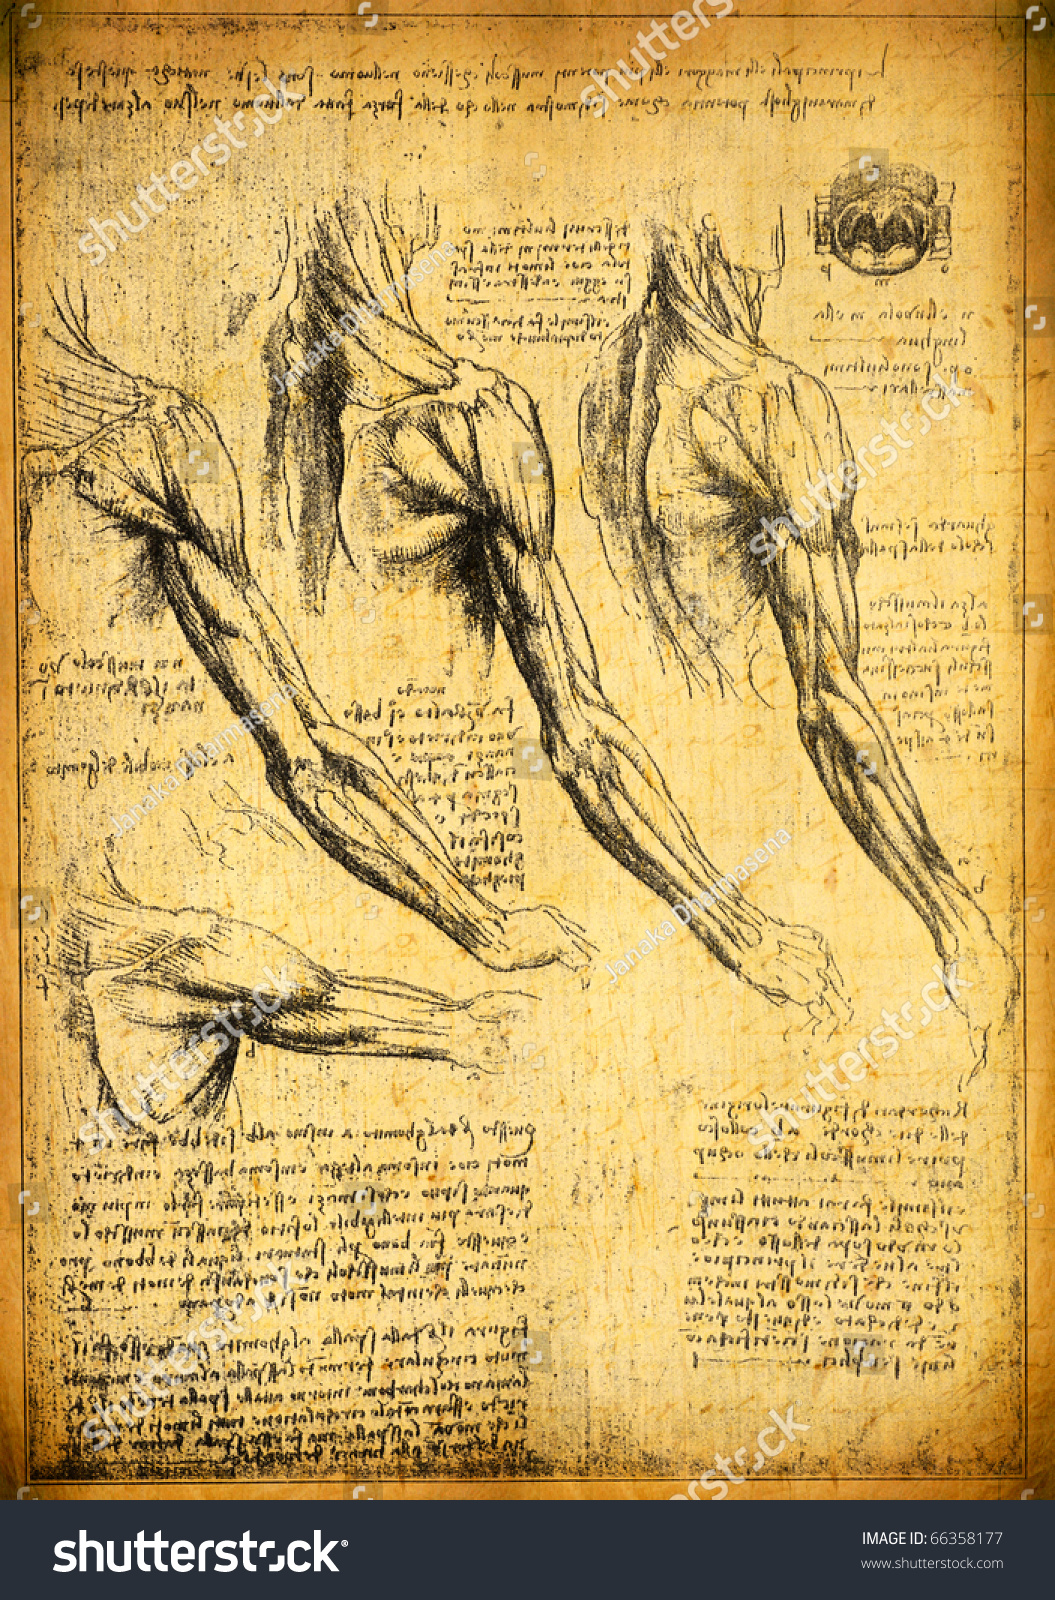 Anatomy Art By Leonardo Da Vinci Stock Illustration 66358177 ...